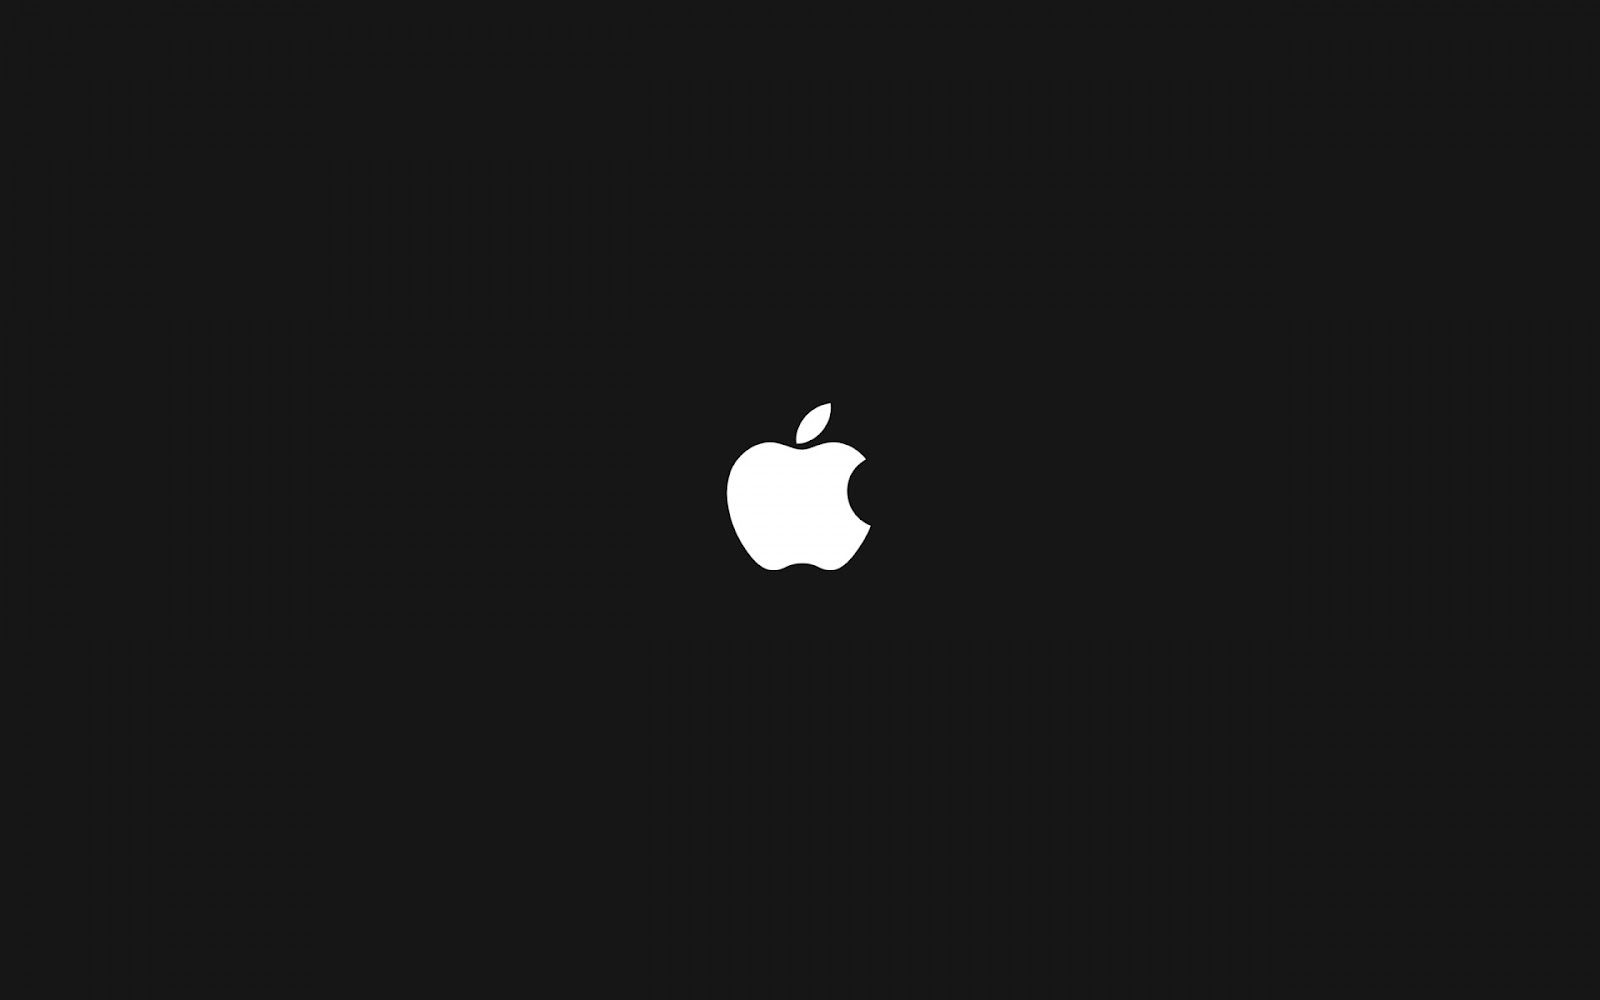 Wallpaper download apple - Find This Pin And More On Download Wallpaper The Halloween Apple Widescreen Wallpaper